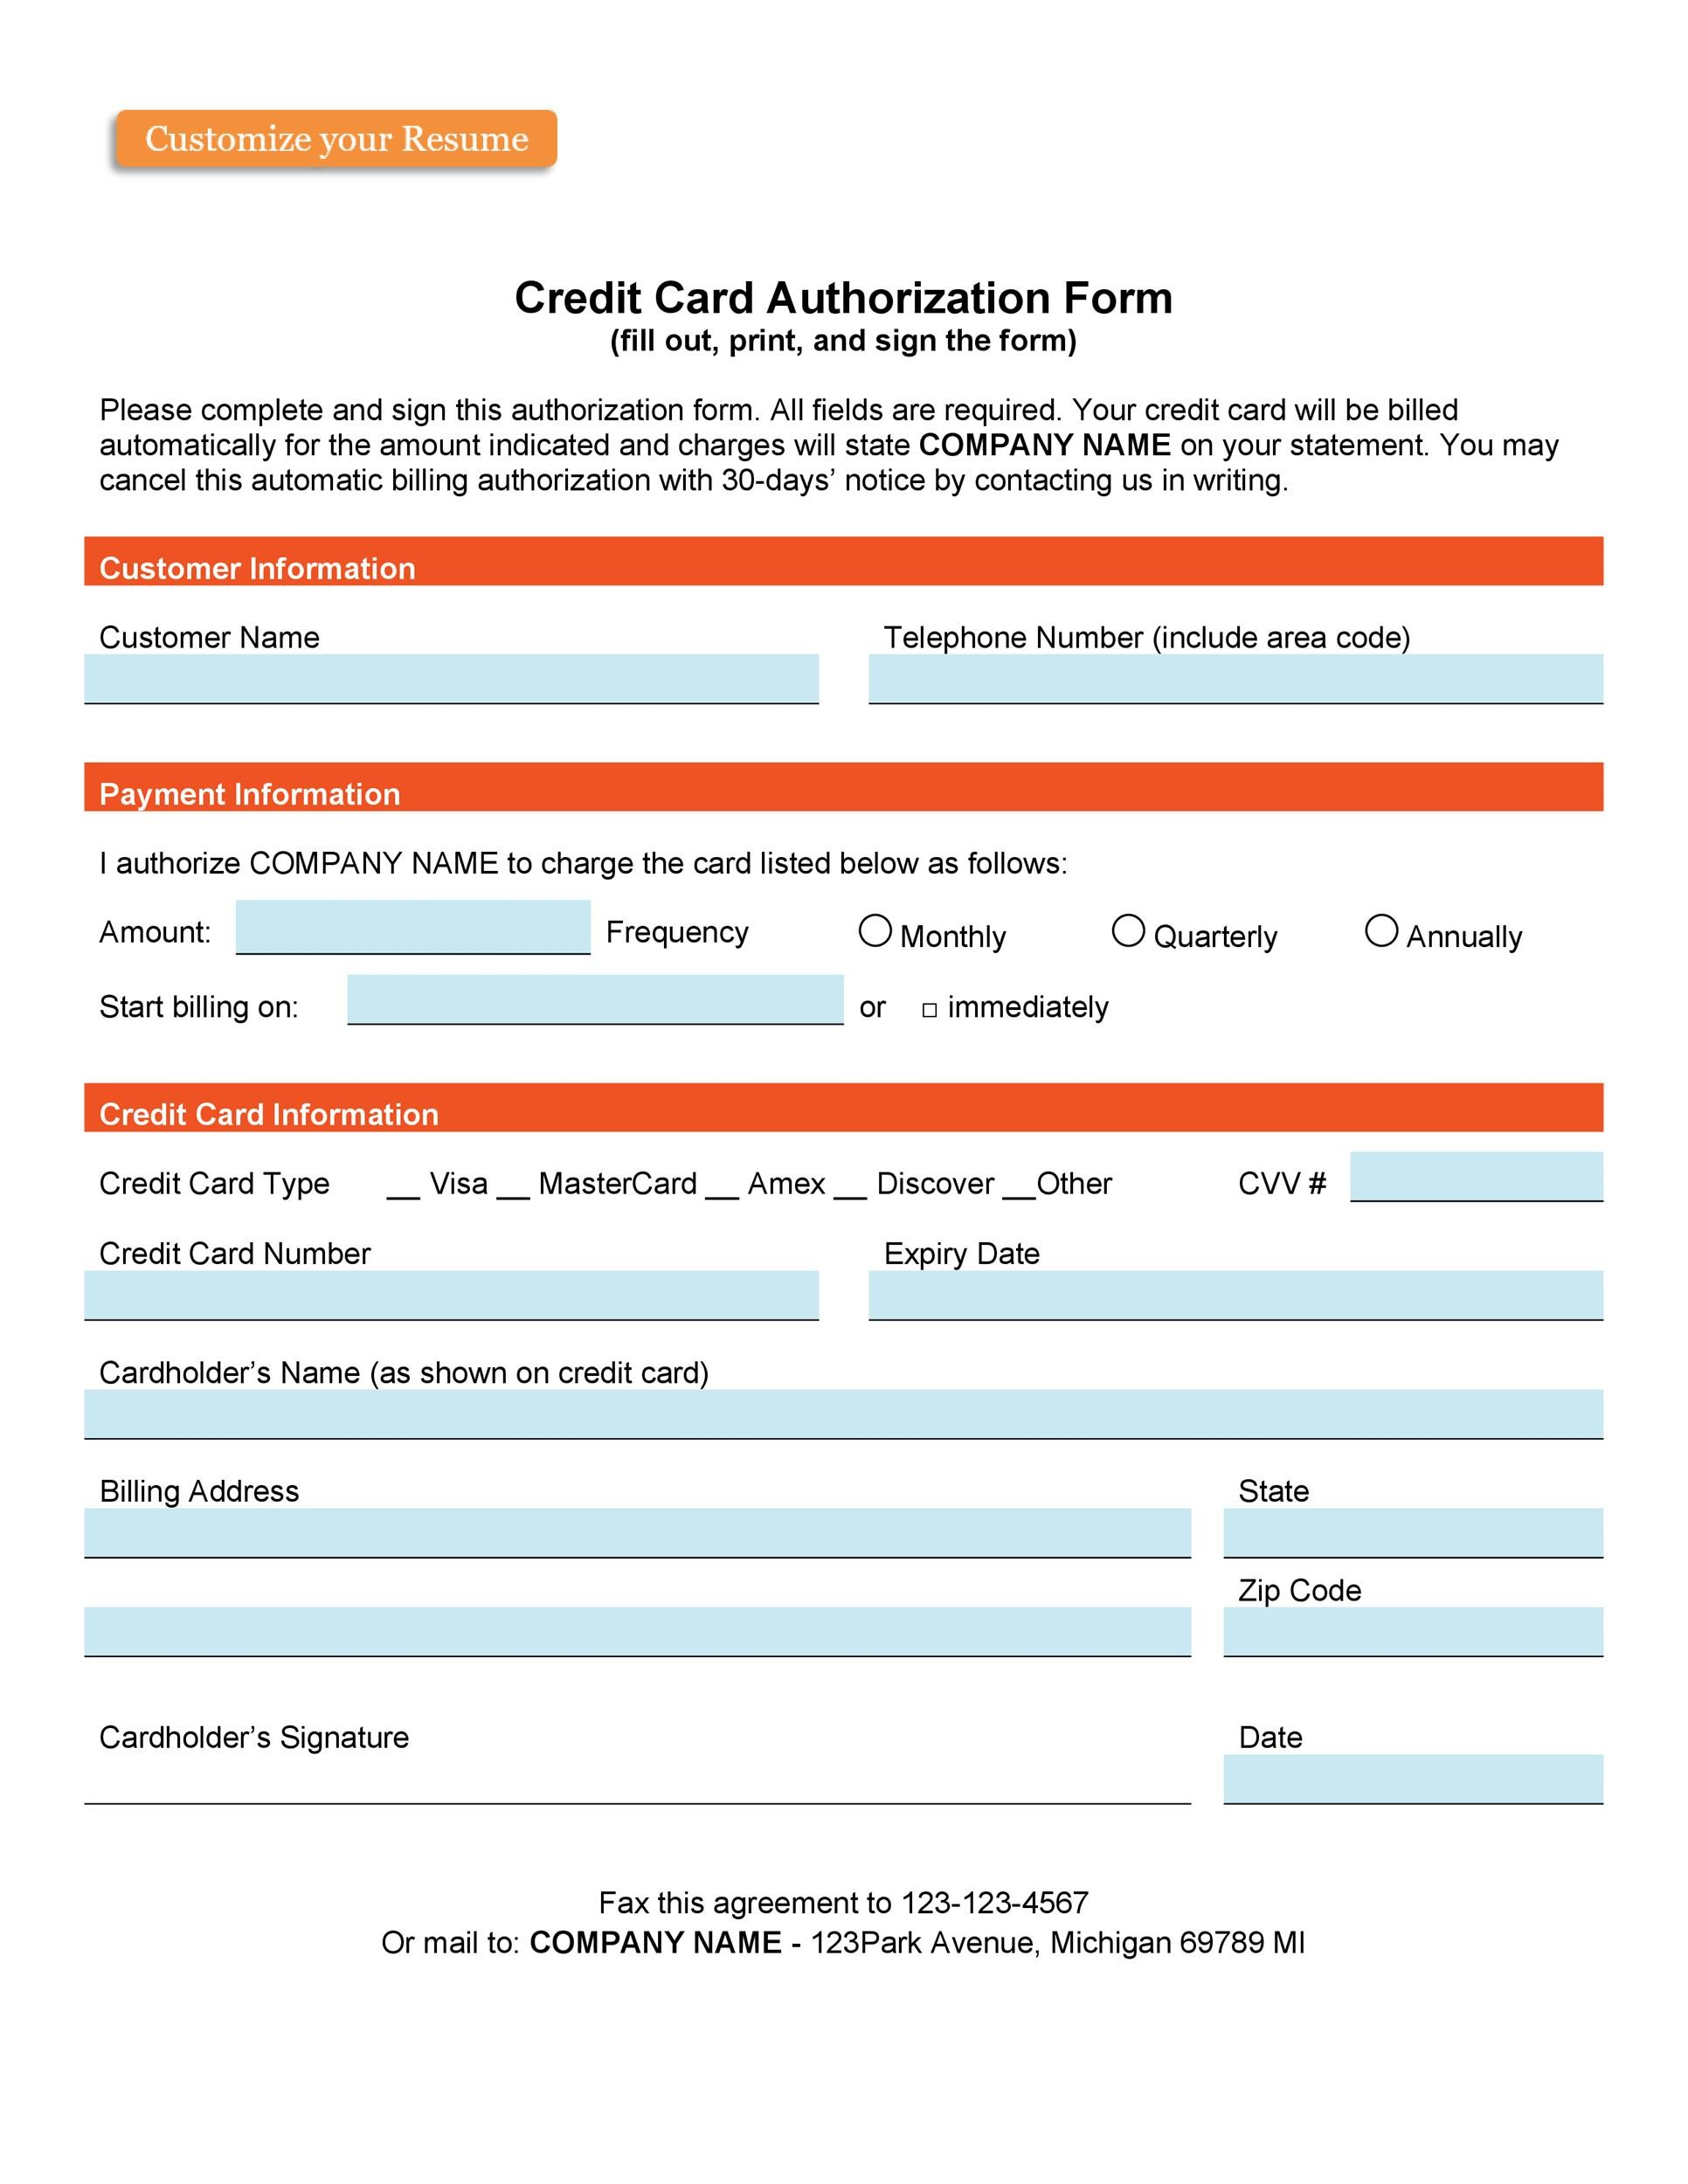 Free credit card authorization form template 31